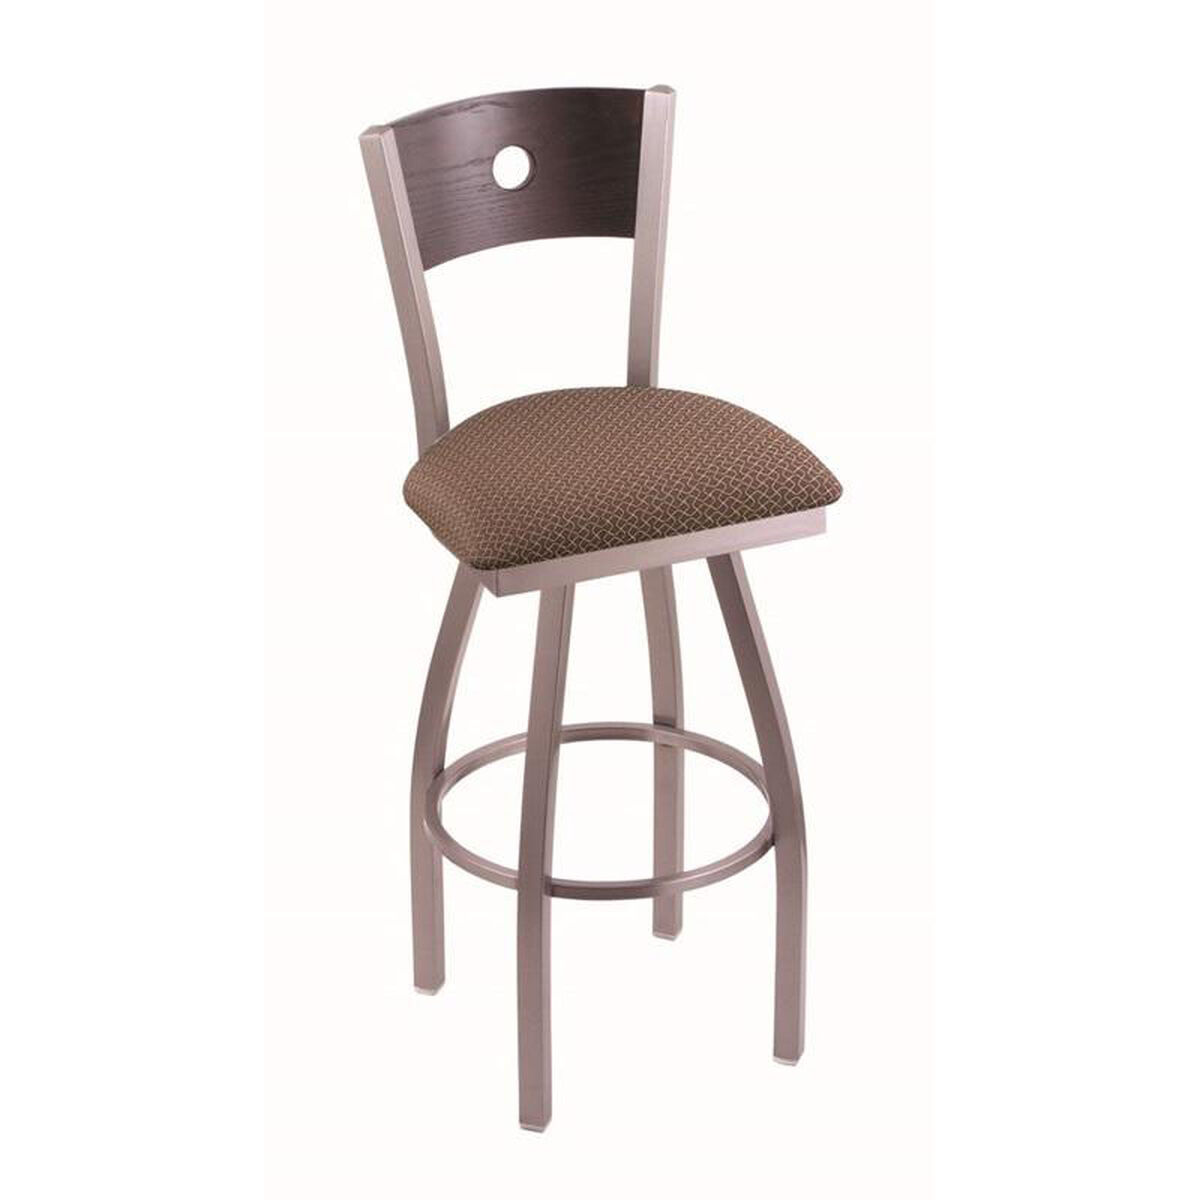 Voltaire Fabric Swivel Stool 83025ssdcoakbaxswil